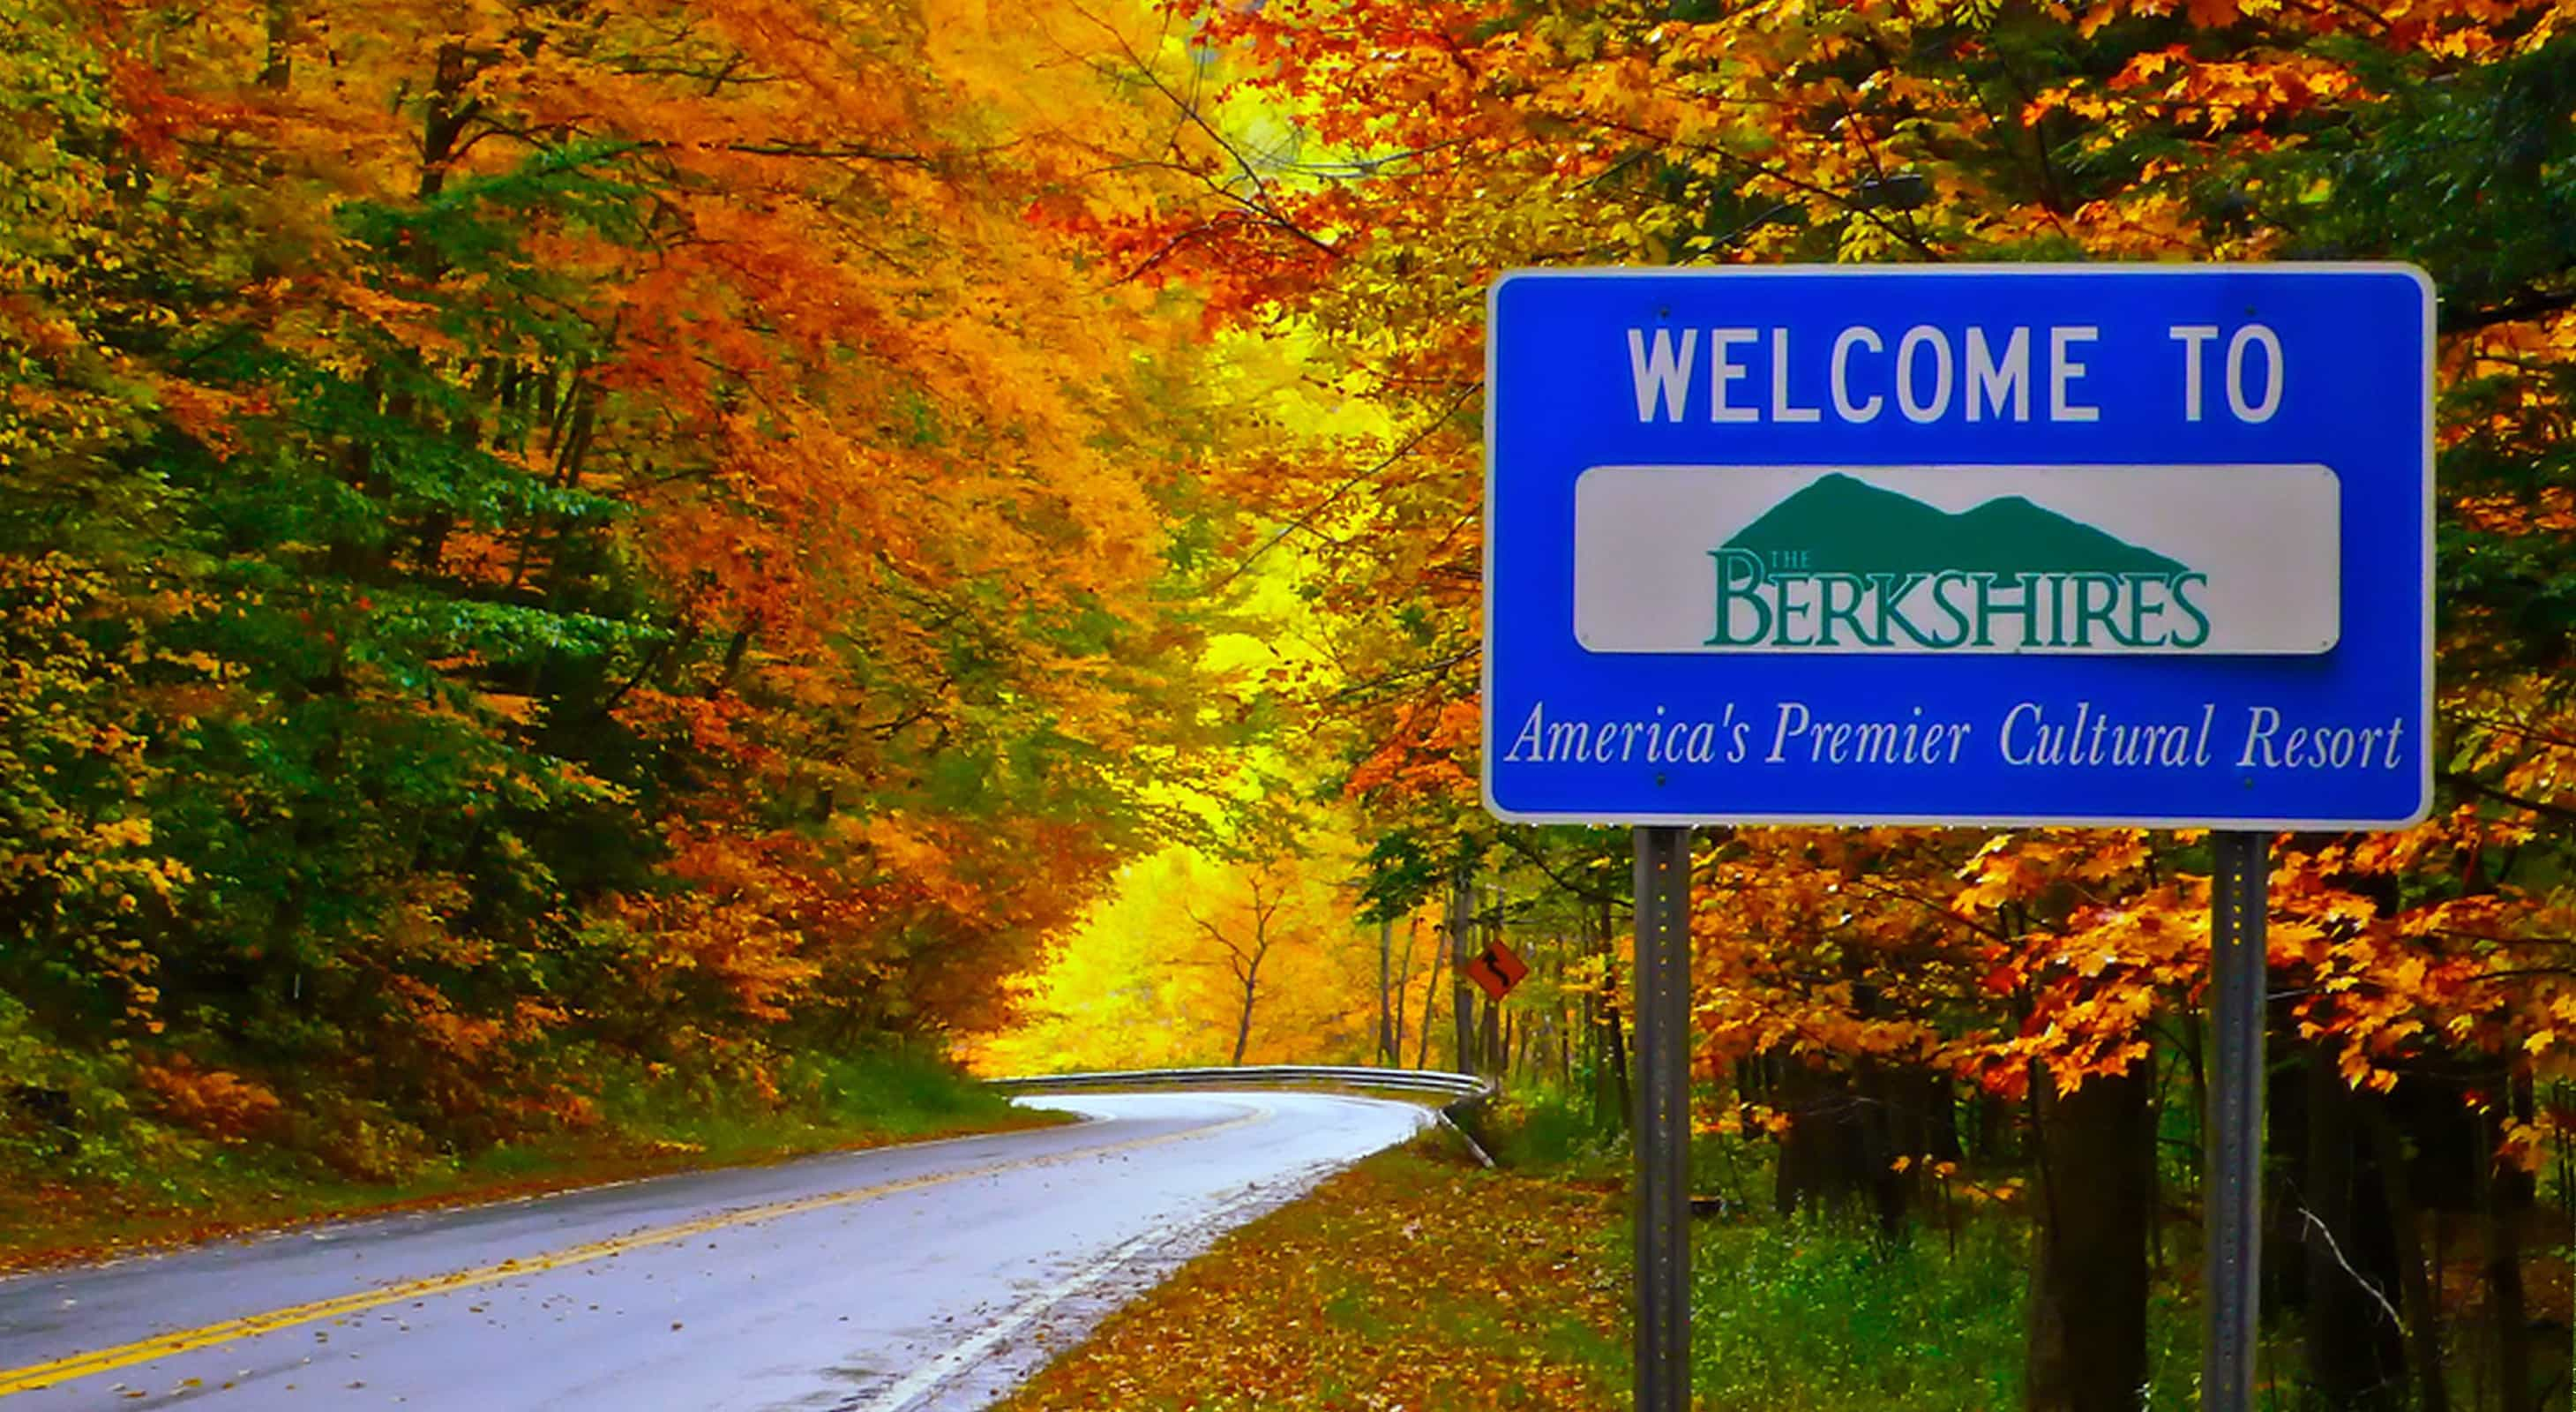 Road with Fall Foliage and Welcome Sign